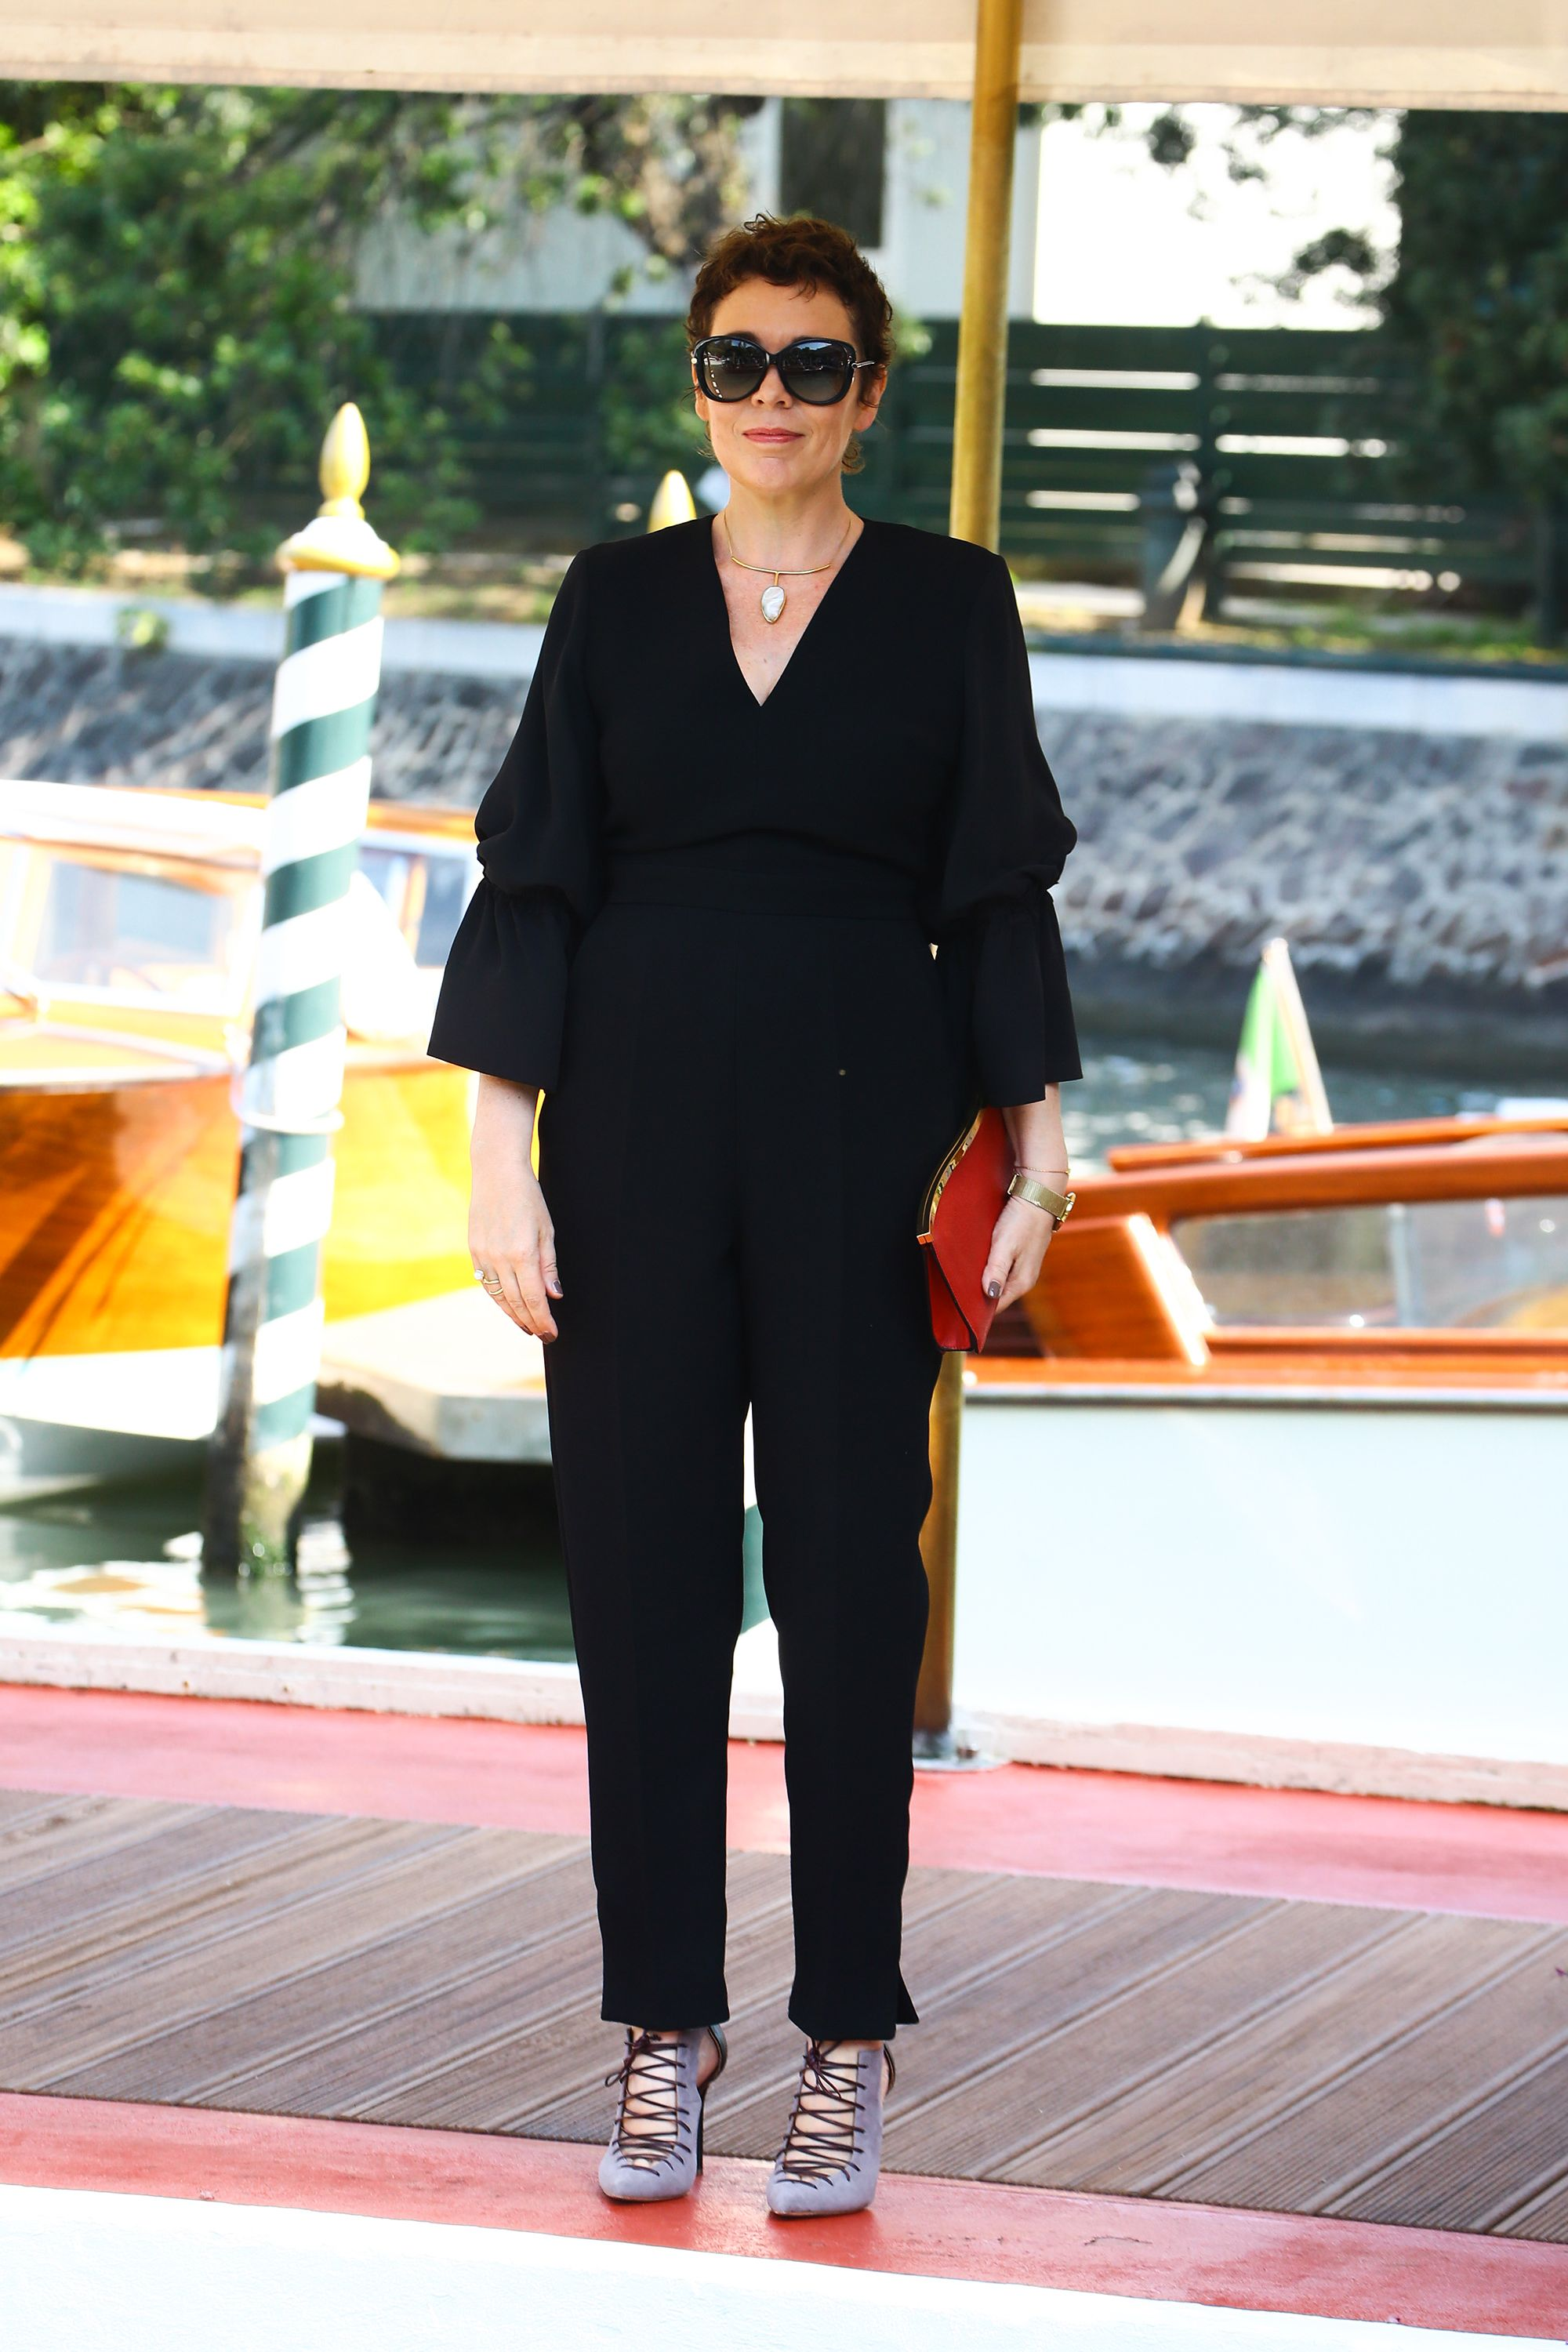 Arriving at the Venice Film Festival, Olivia Colman kept it casual in a classic black jumpsuit, gray lace up pumps, and a red clutch.